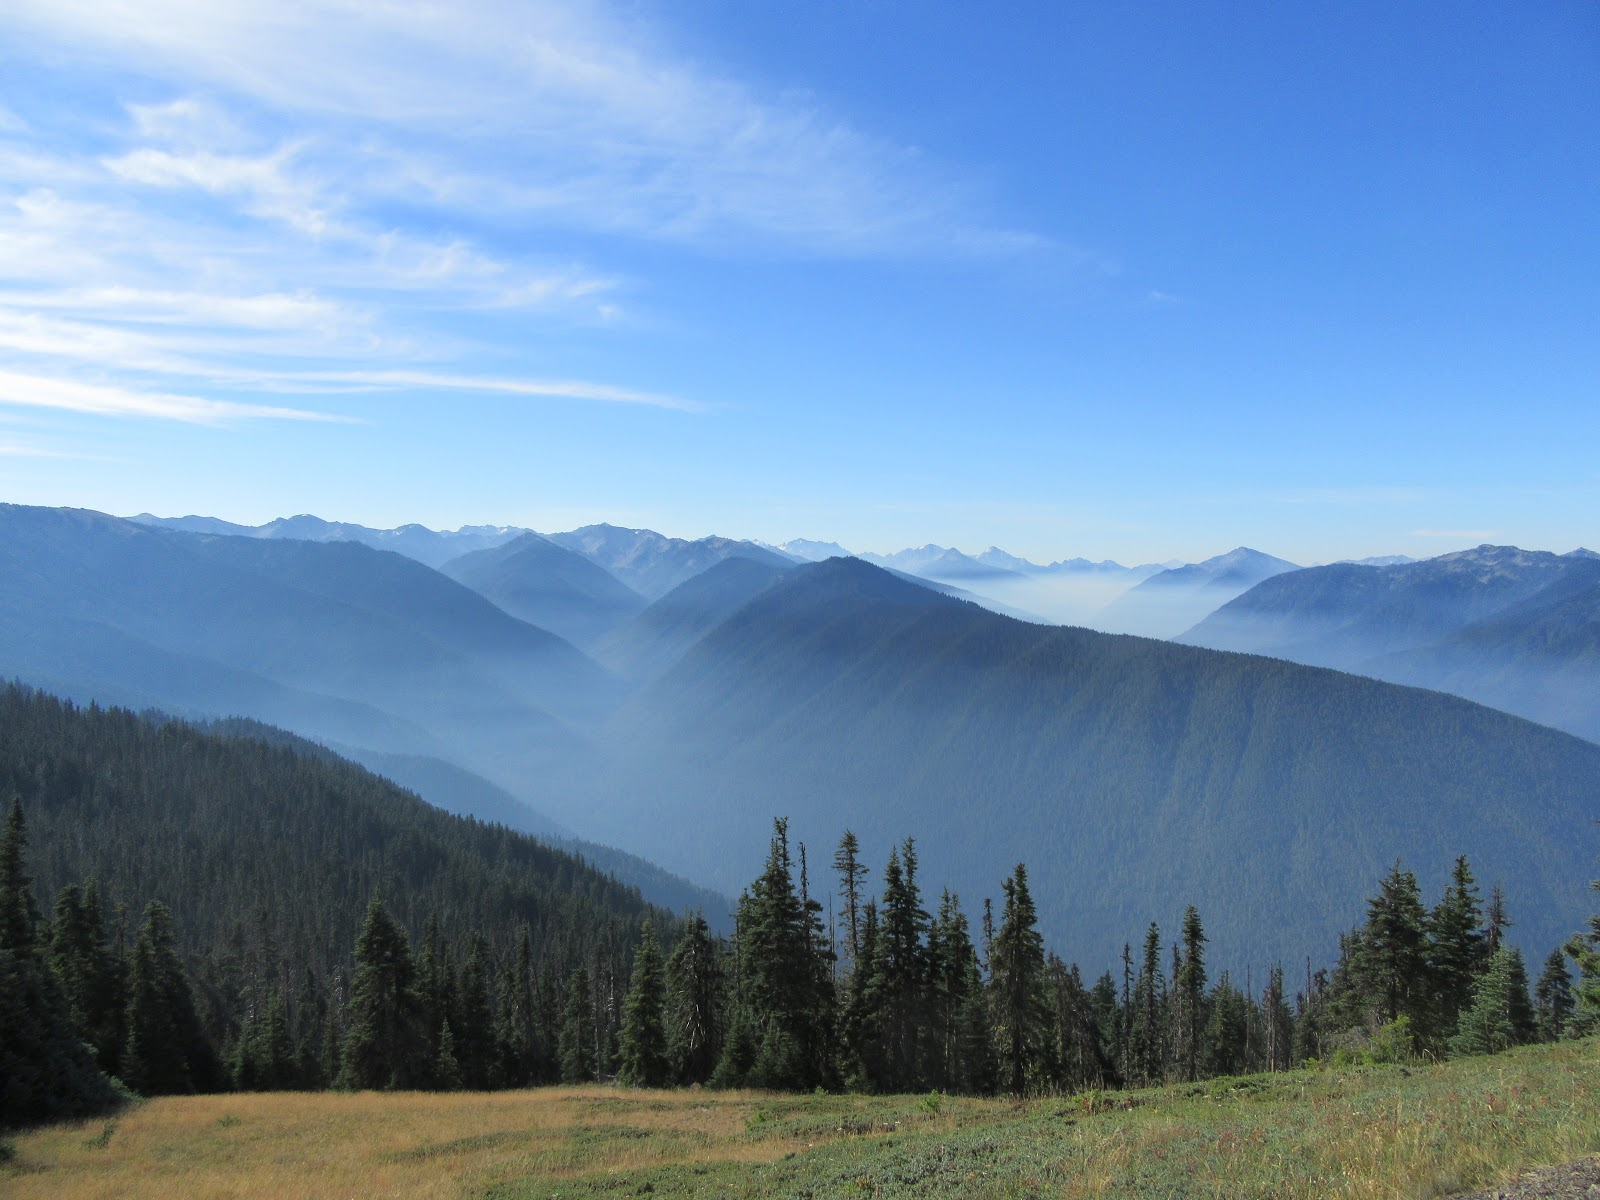 Hurricane Ridge summit with clouds laying in canyons between mountain ridges